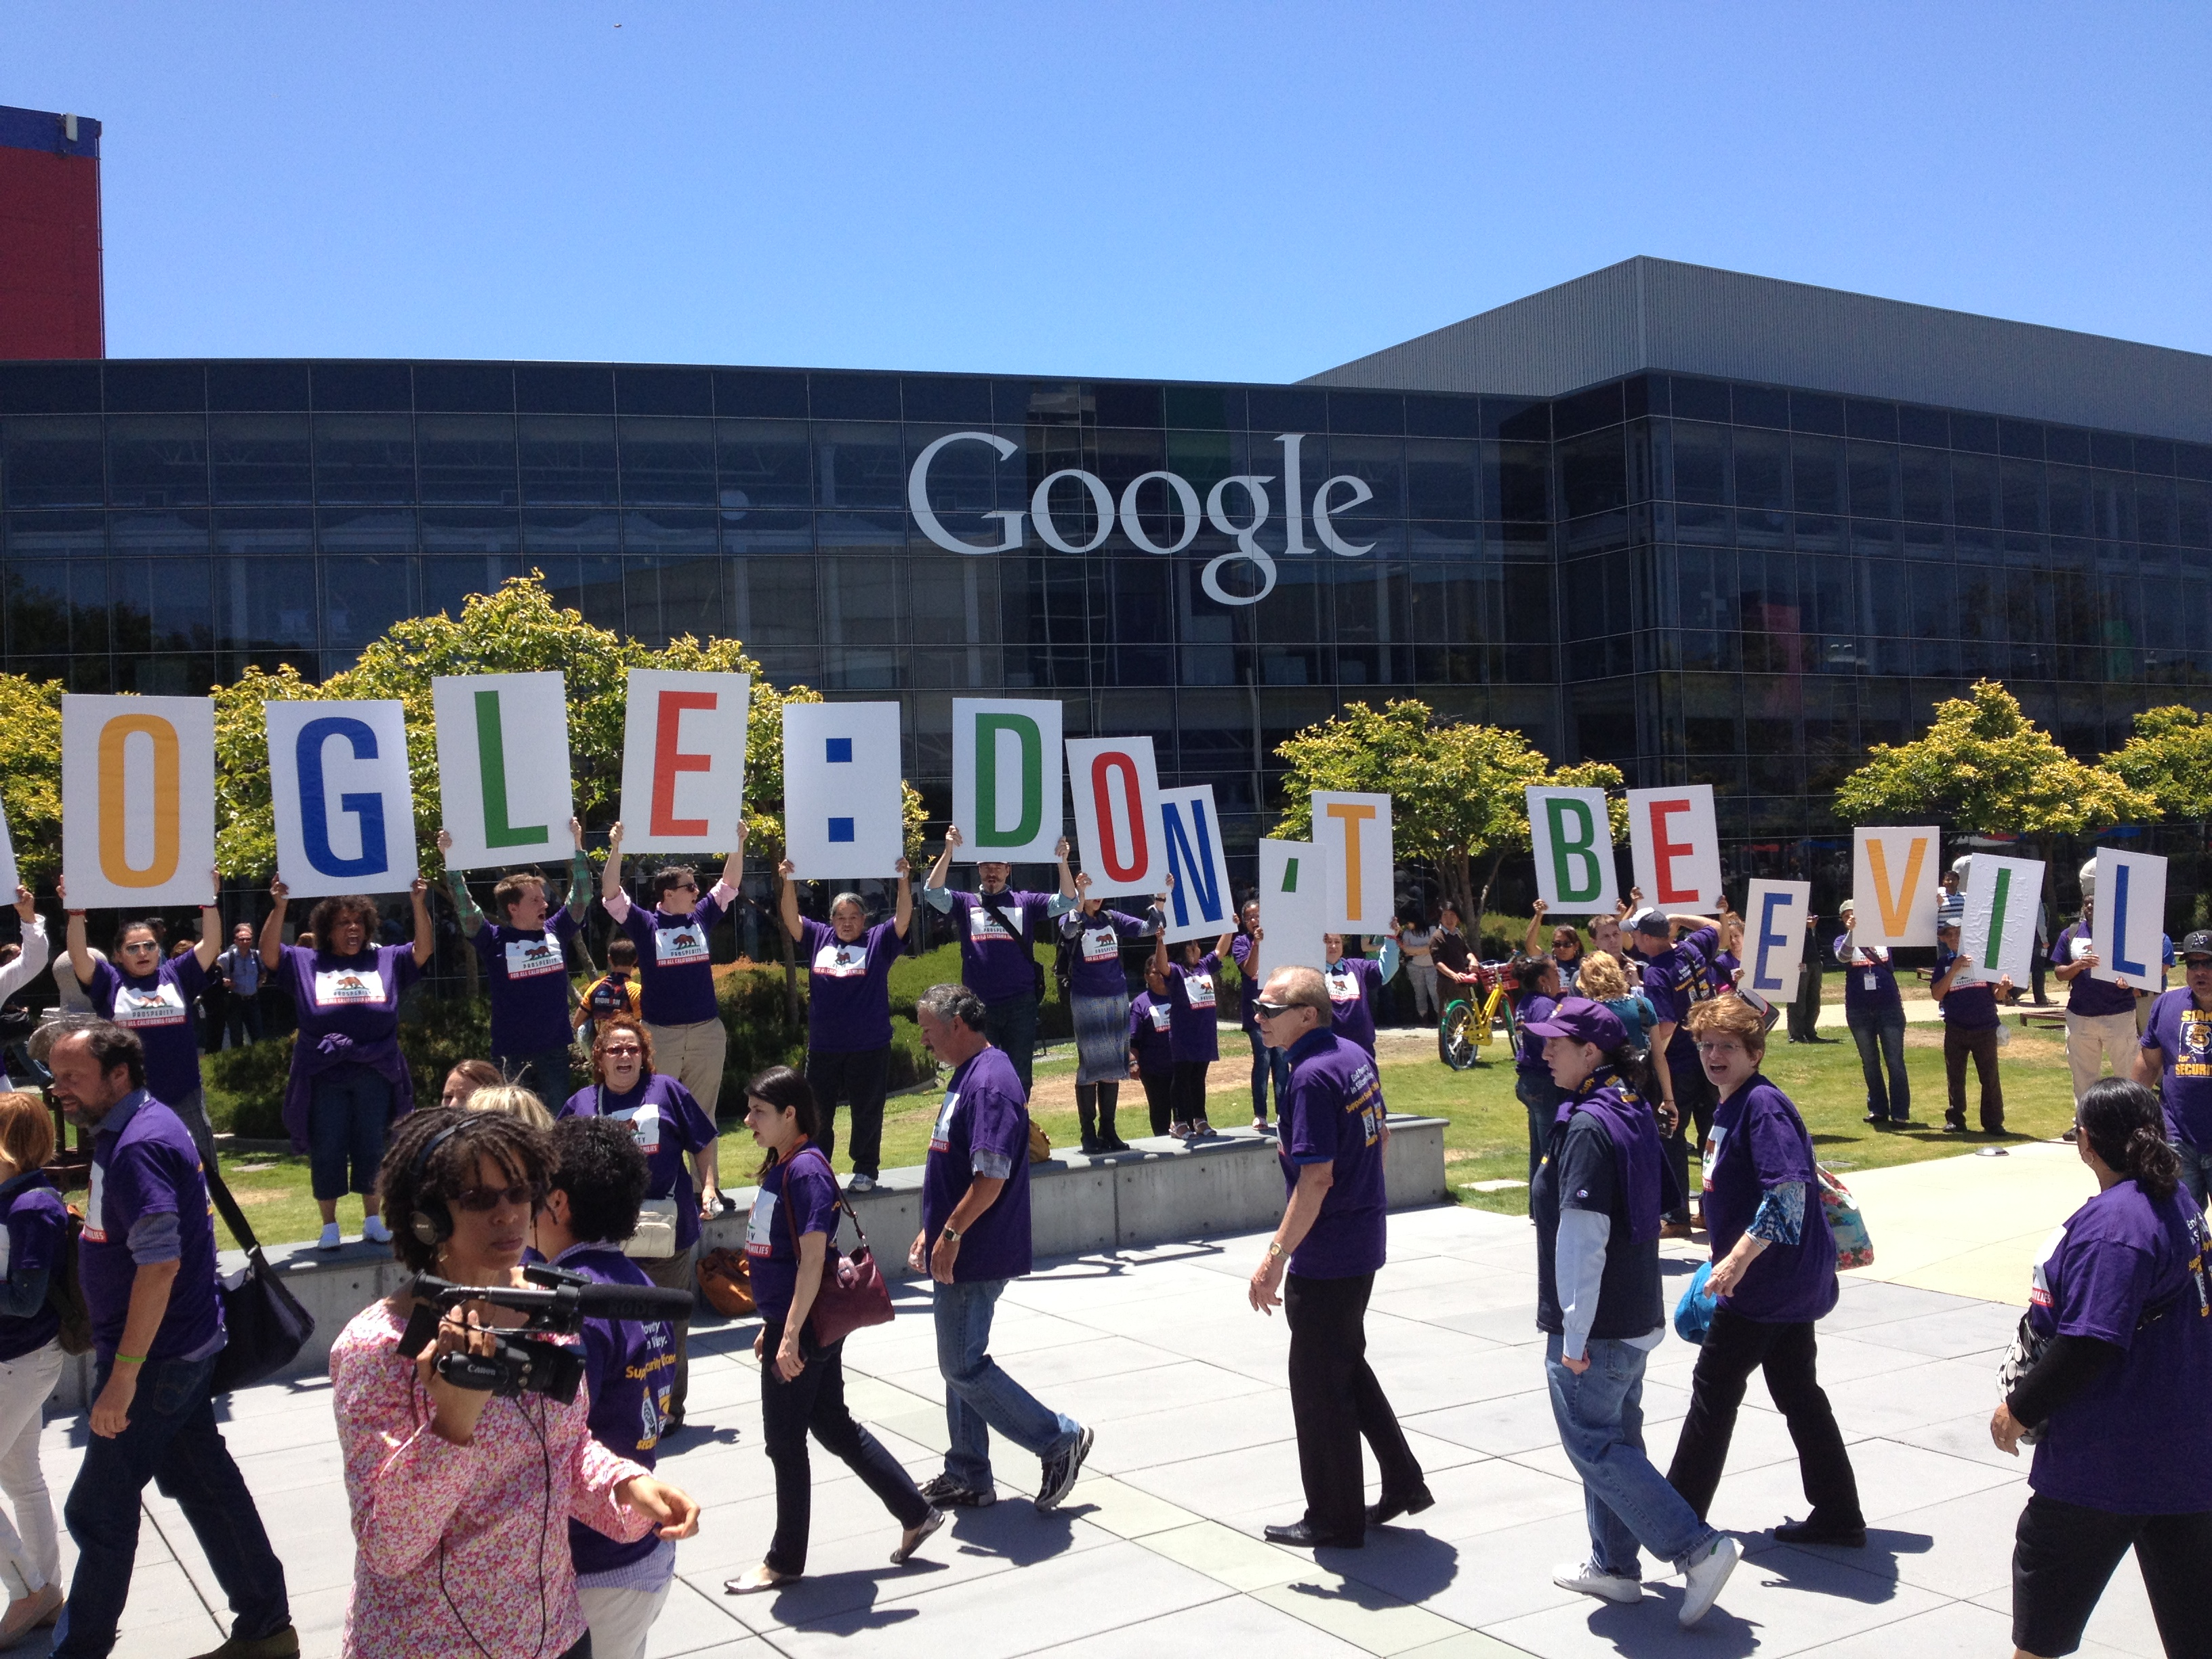 march on Google in solidarity with security officers